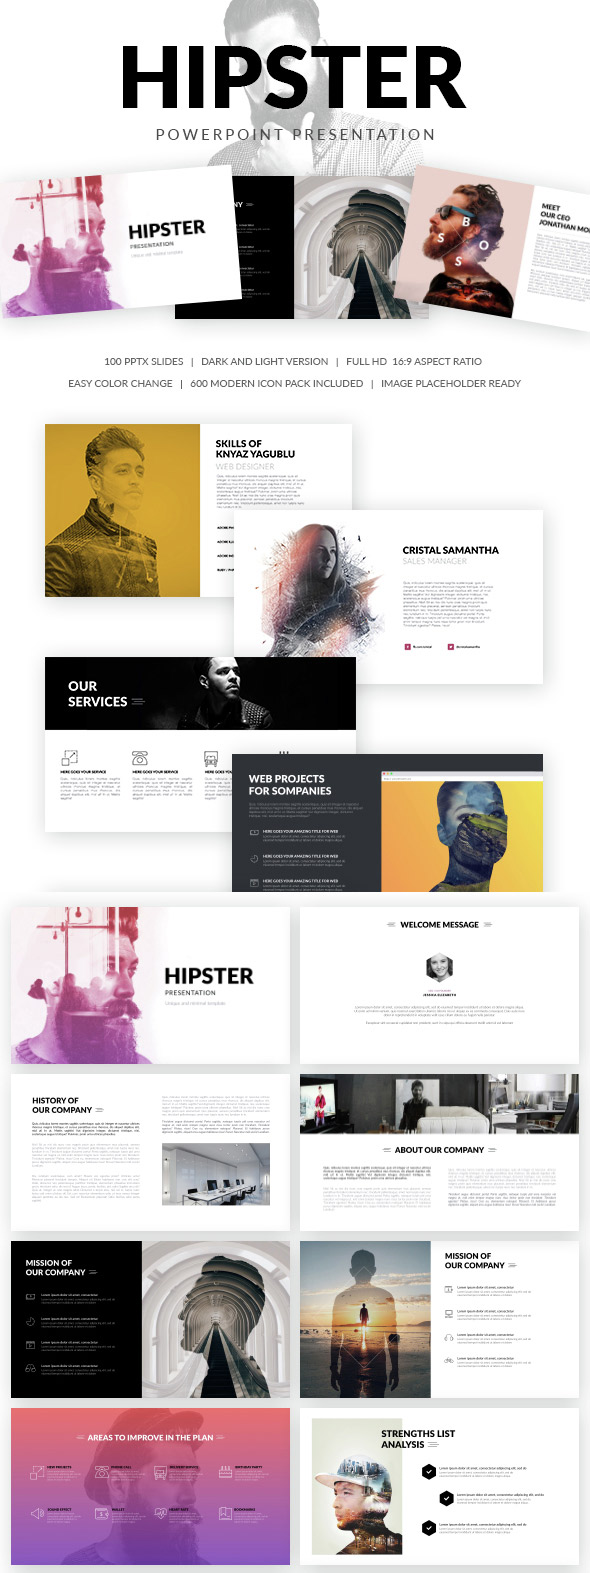 20 ppt templates for simple modern powerpoint presentations hipster modern ppt presentation template toneelgroepblik Image collections